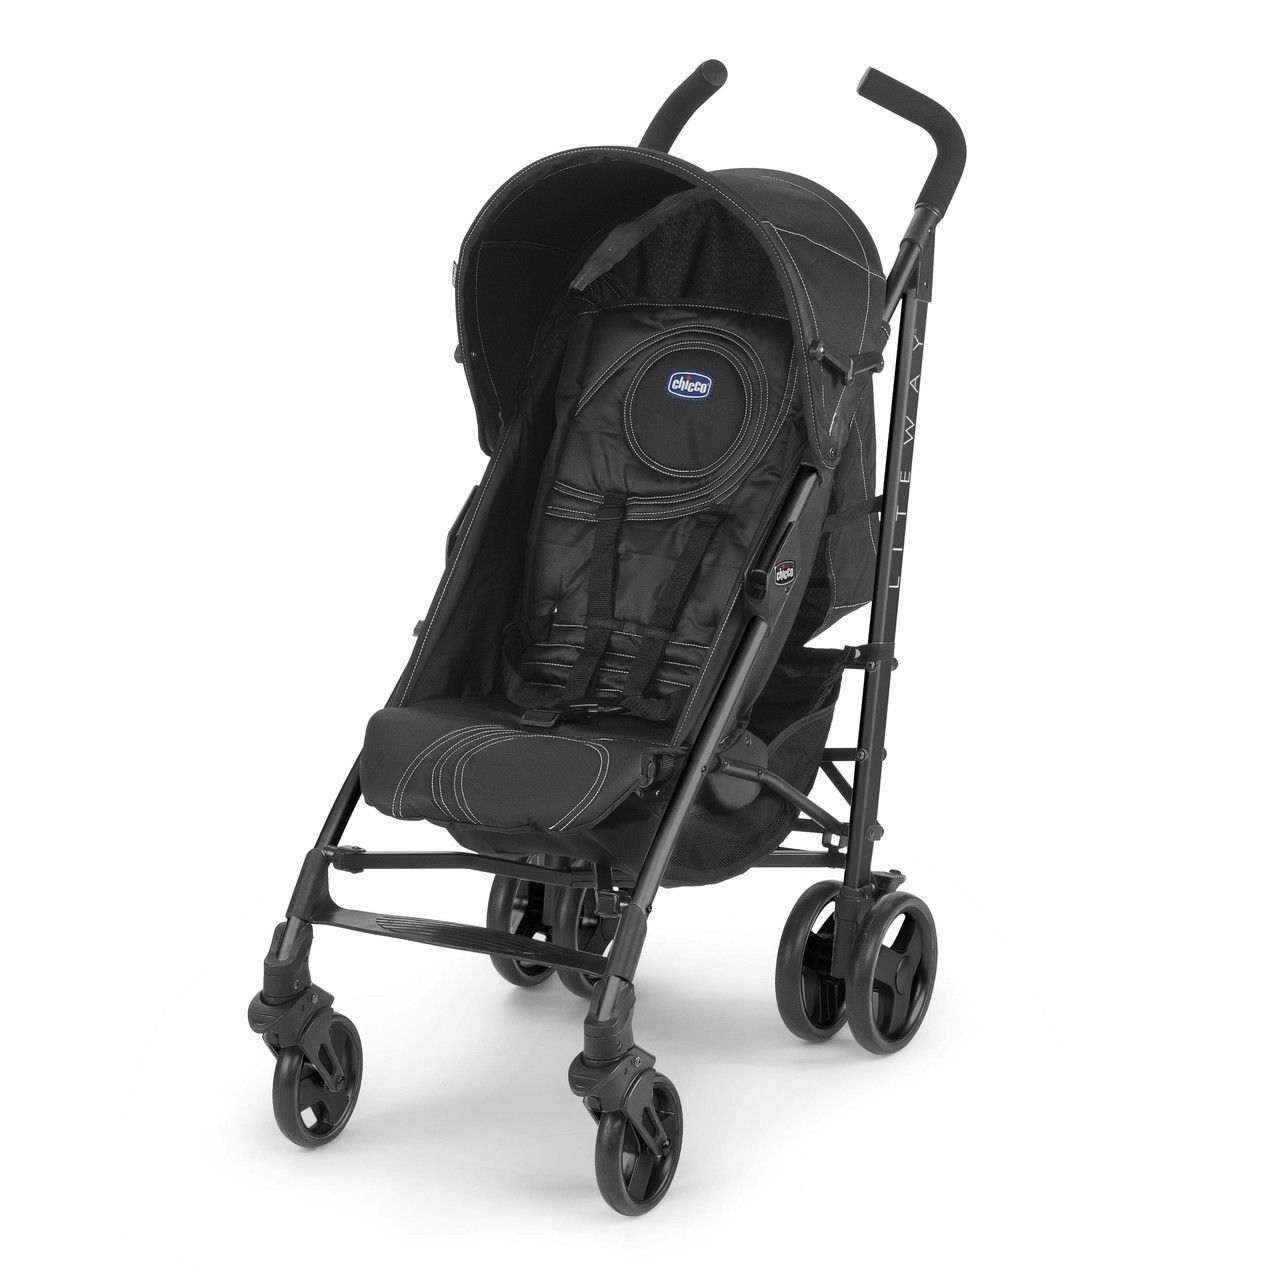 Chicco Lite Way Stroller Free Shipping for Metro Manila